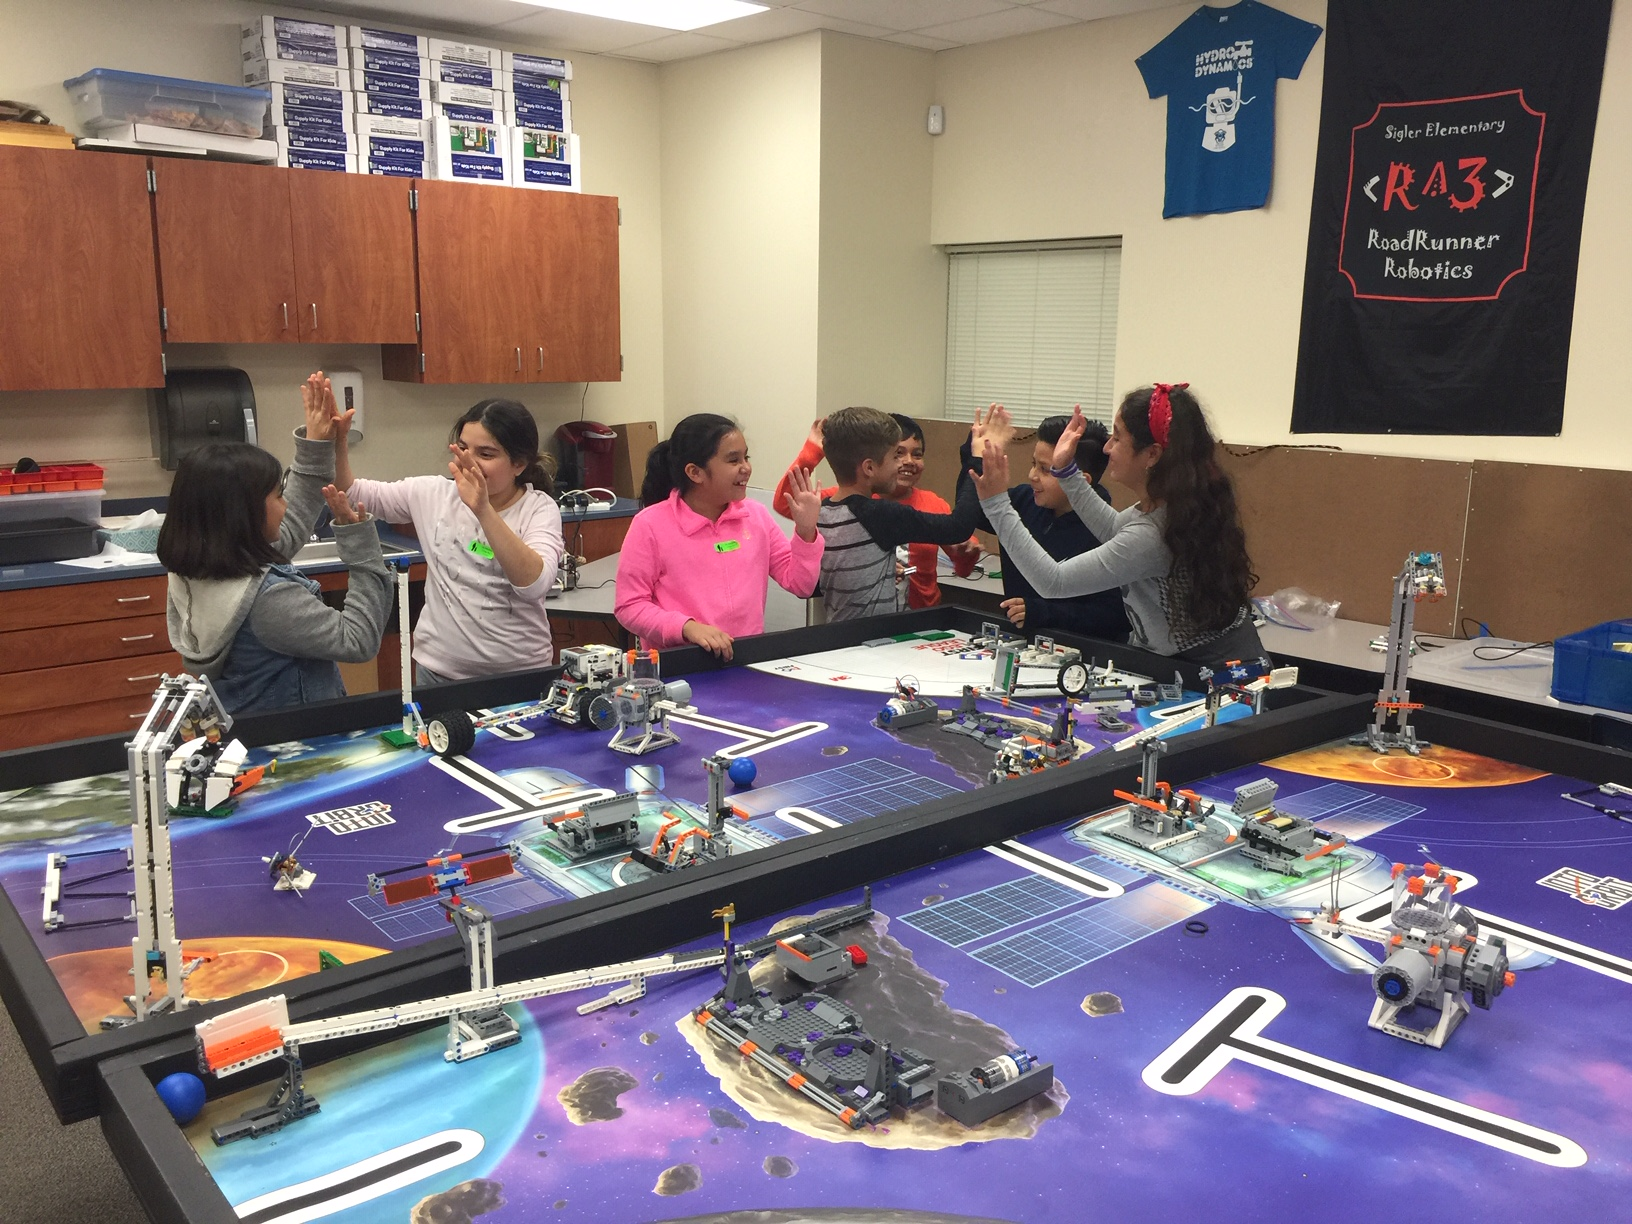 Sigler Elem, FLL robotics team celebrating with high fives